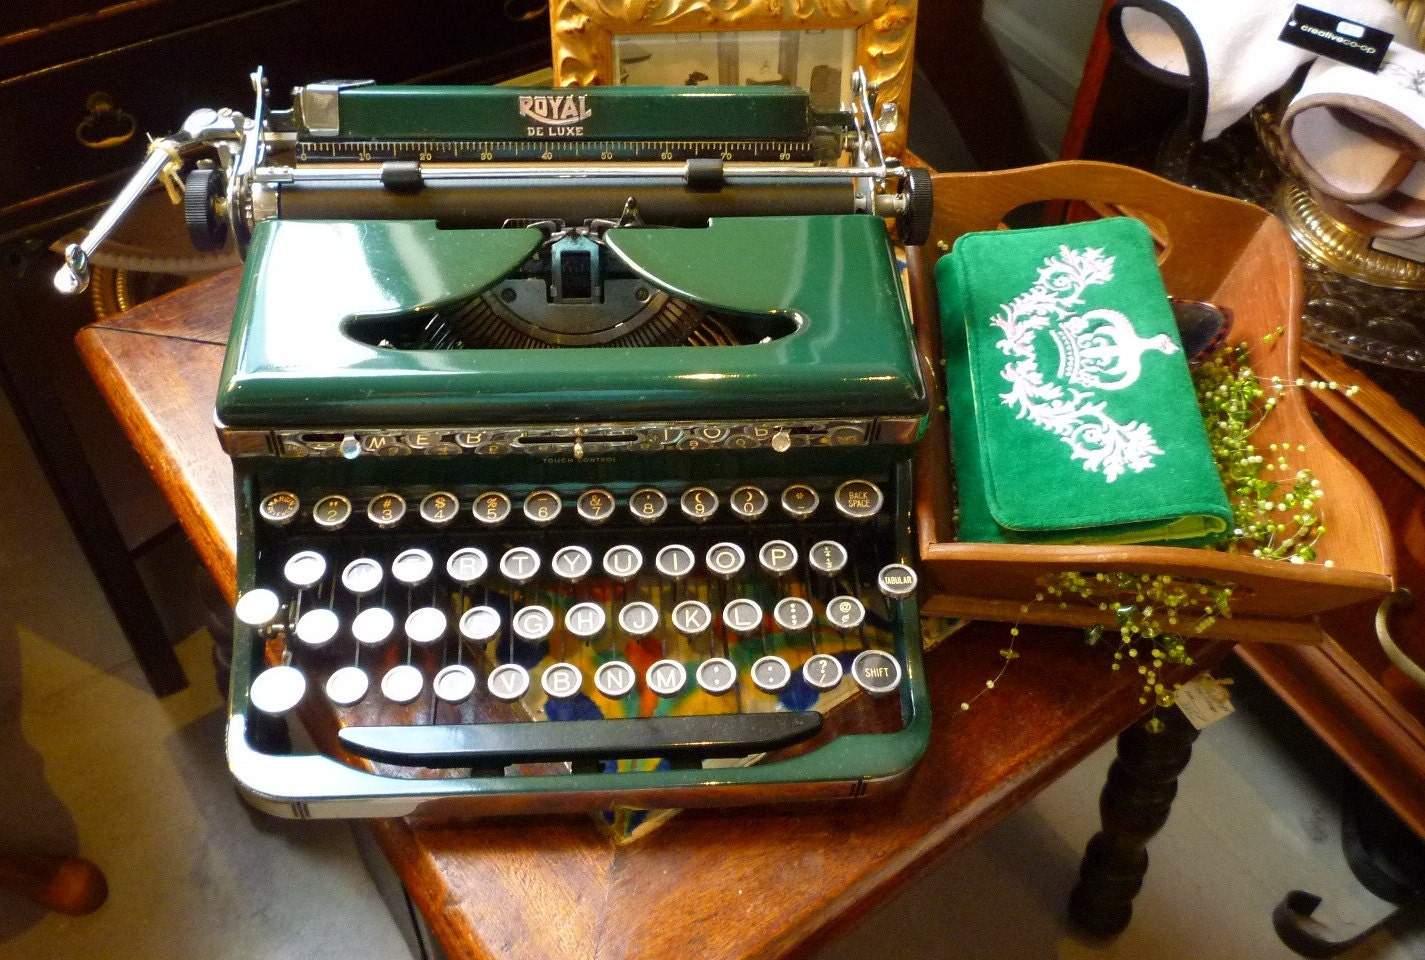 ROYAL DELUXE Portable Typewriter Green and Pristine